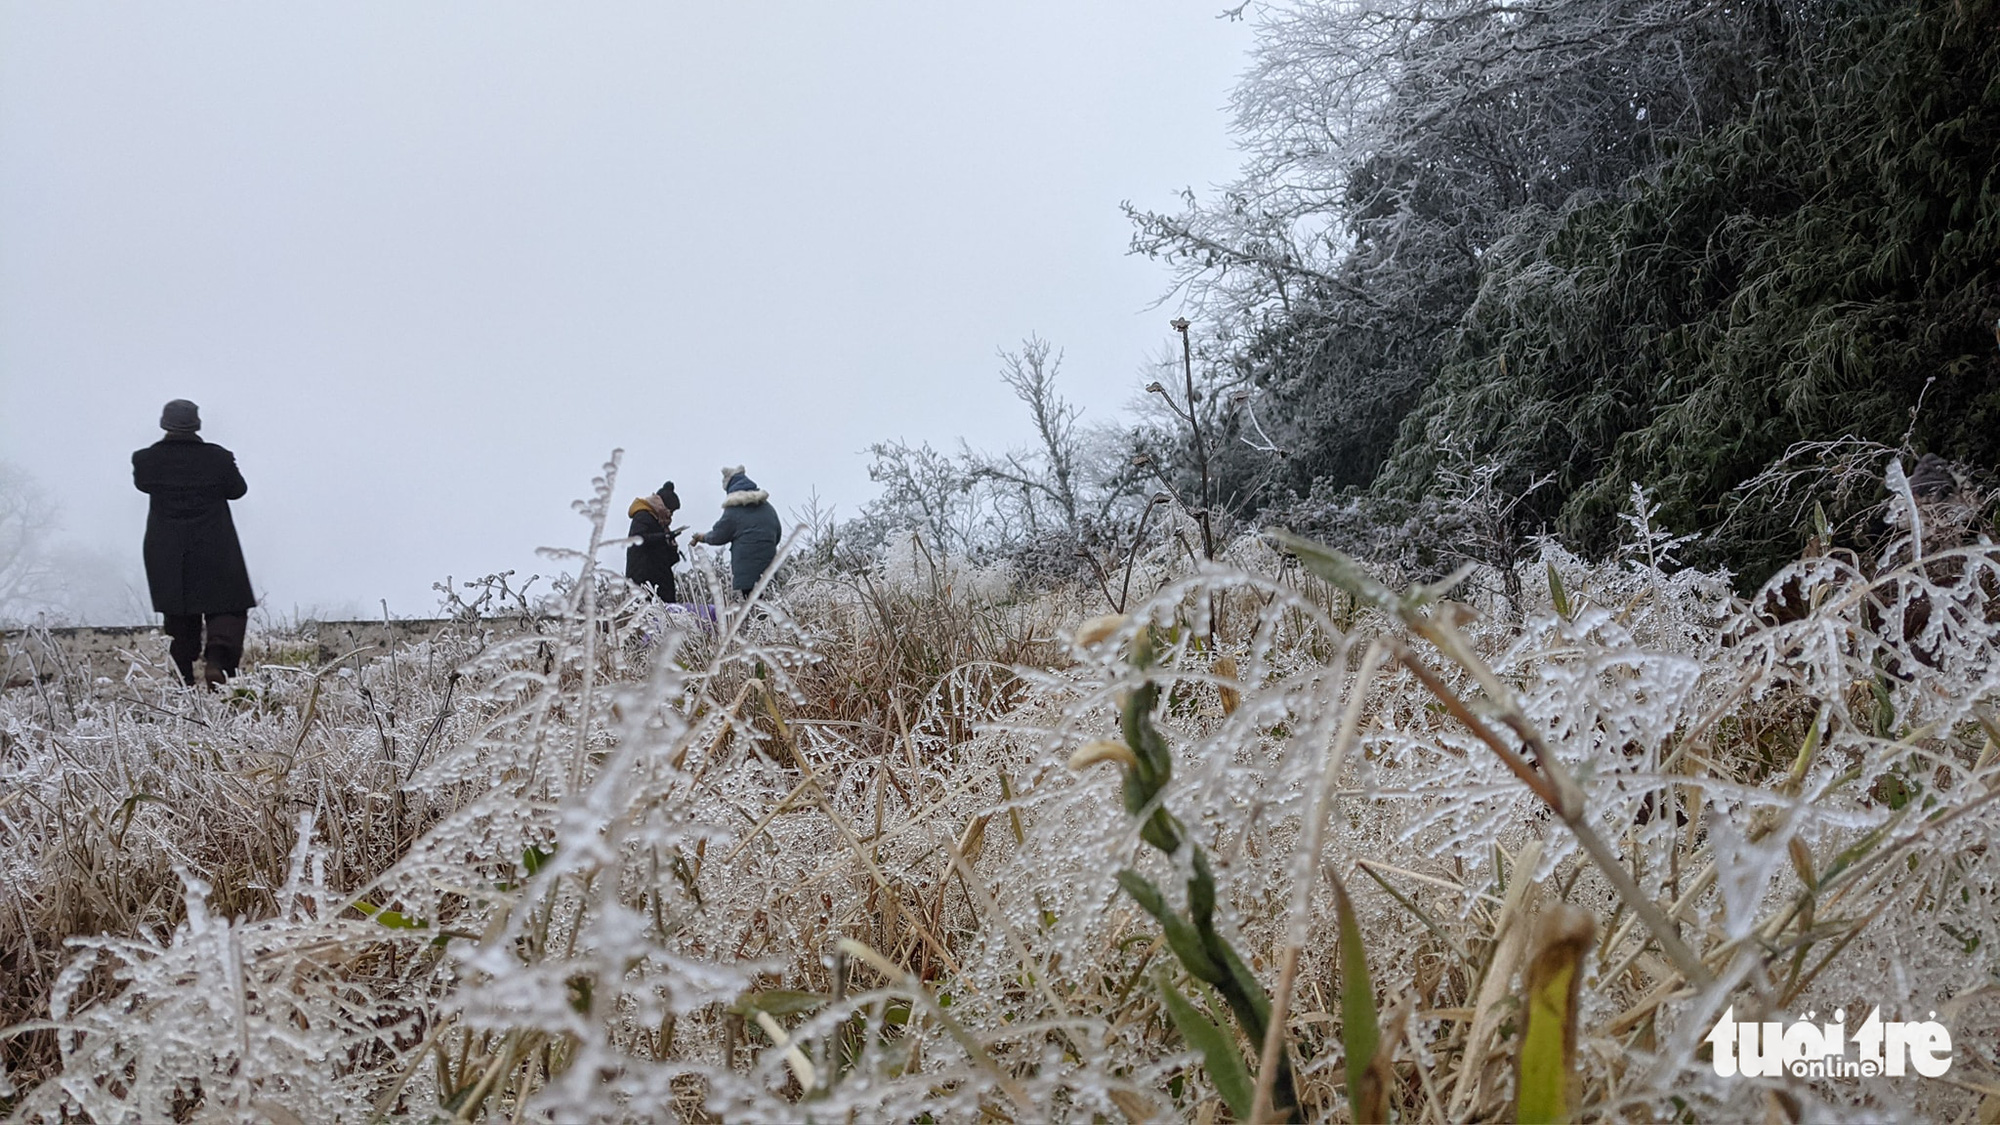 Frost has not melted on Phja Oac Mountain in Cao Bang Province, Vietnam at 7:30 am on January 8, 2021. Photo: Ha Cuong / Tuoi Tre